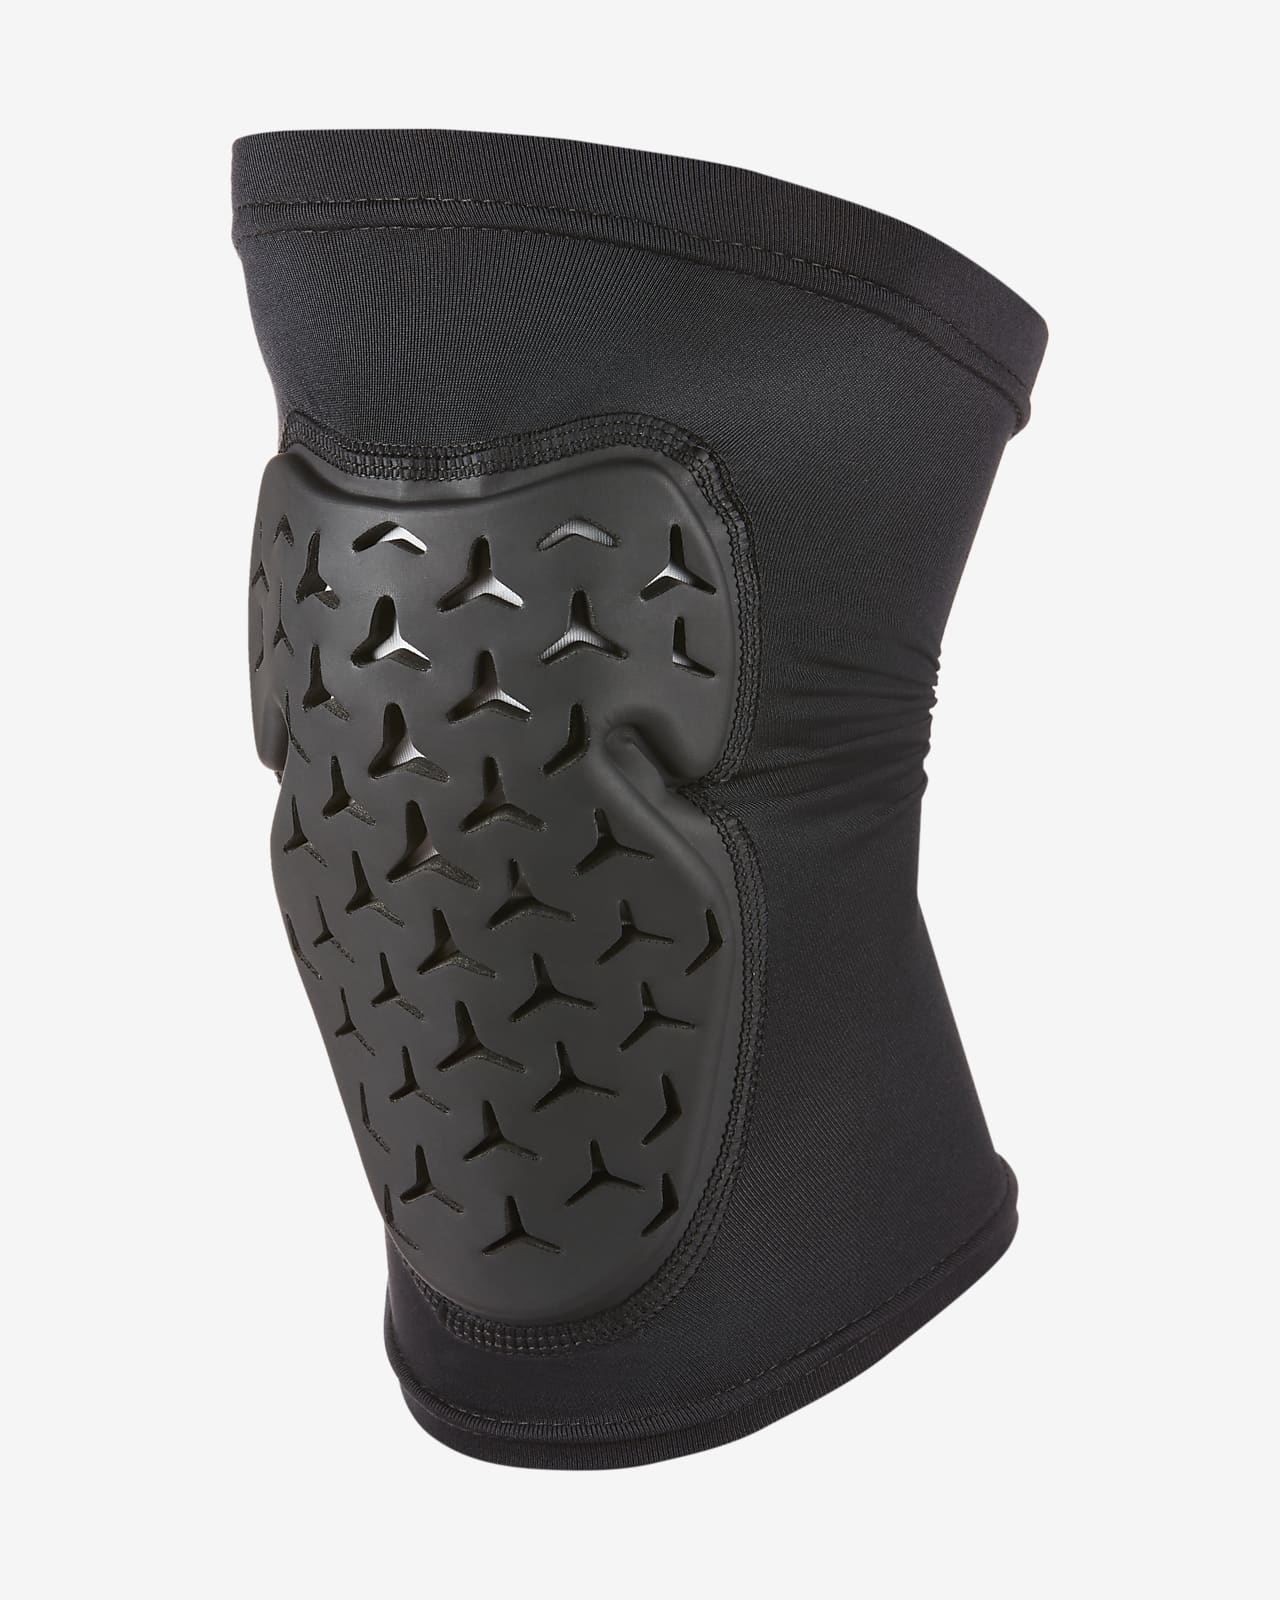 Nike Contact Support Shin/Knee/Elbow/Bicep Sleeves